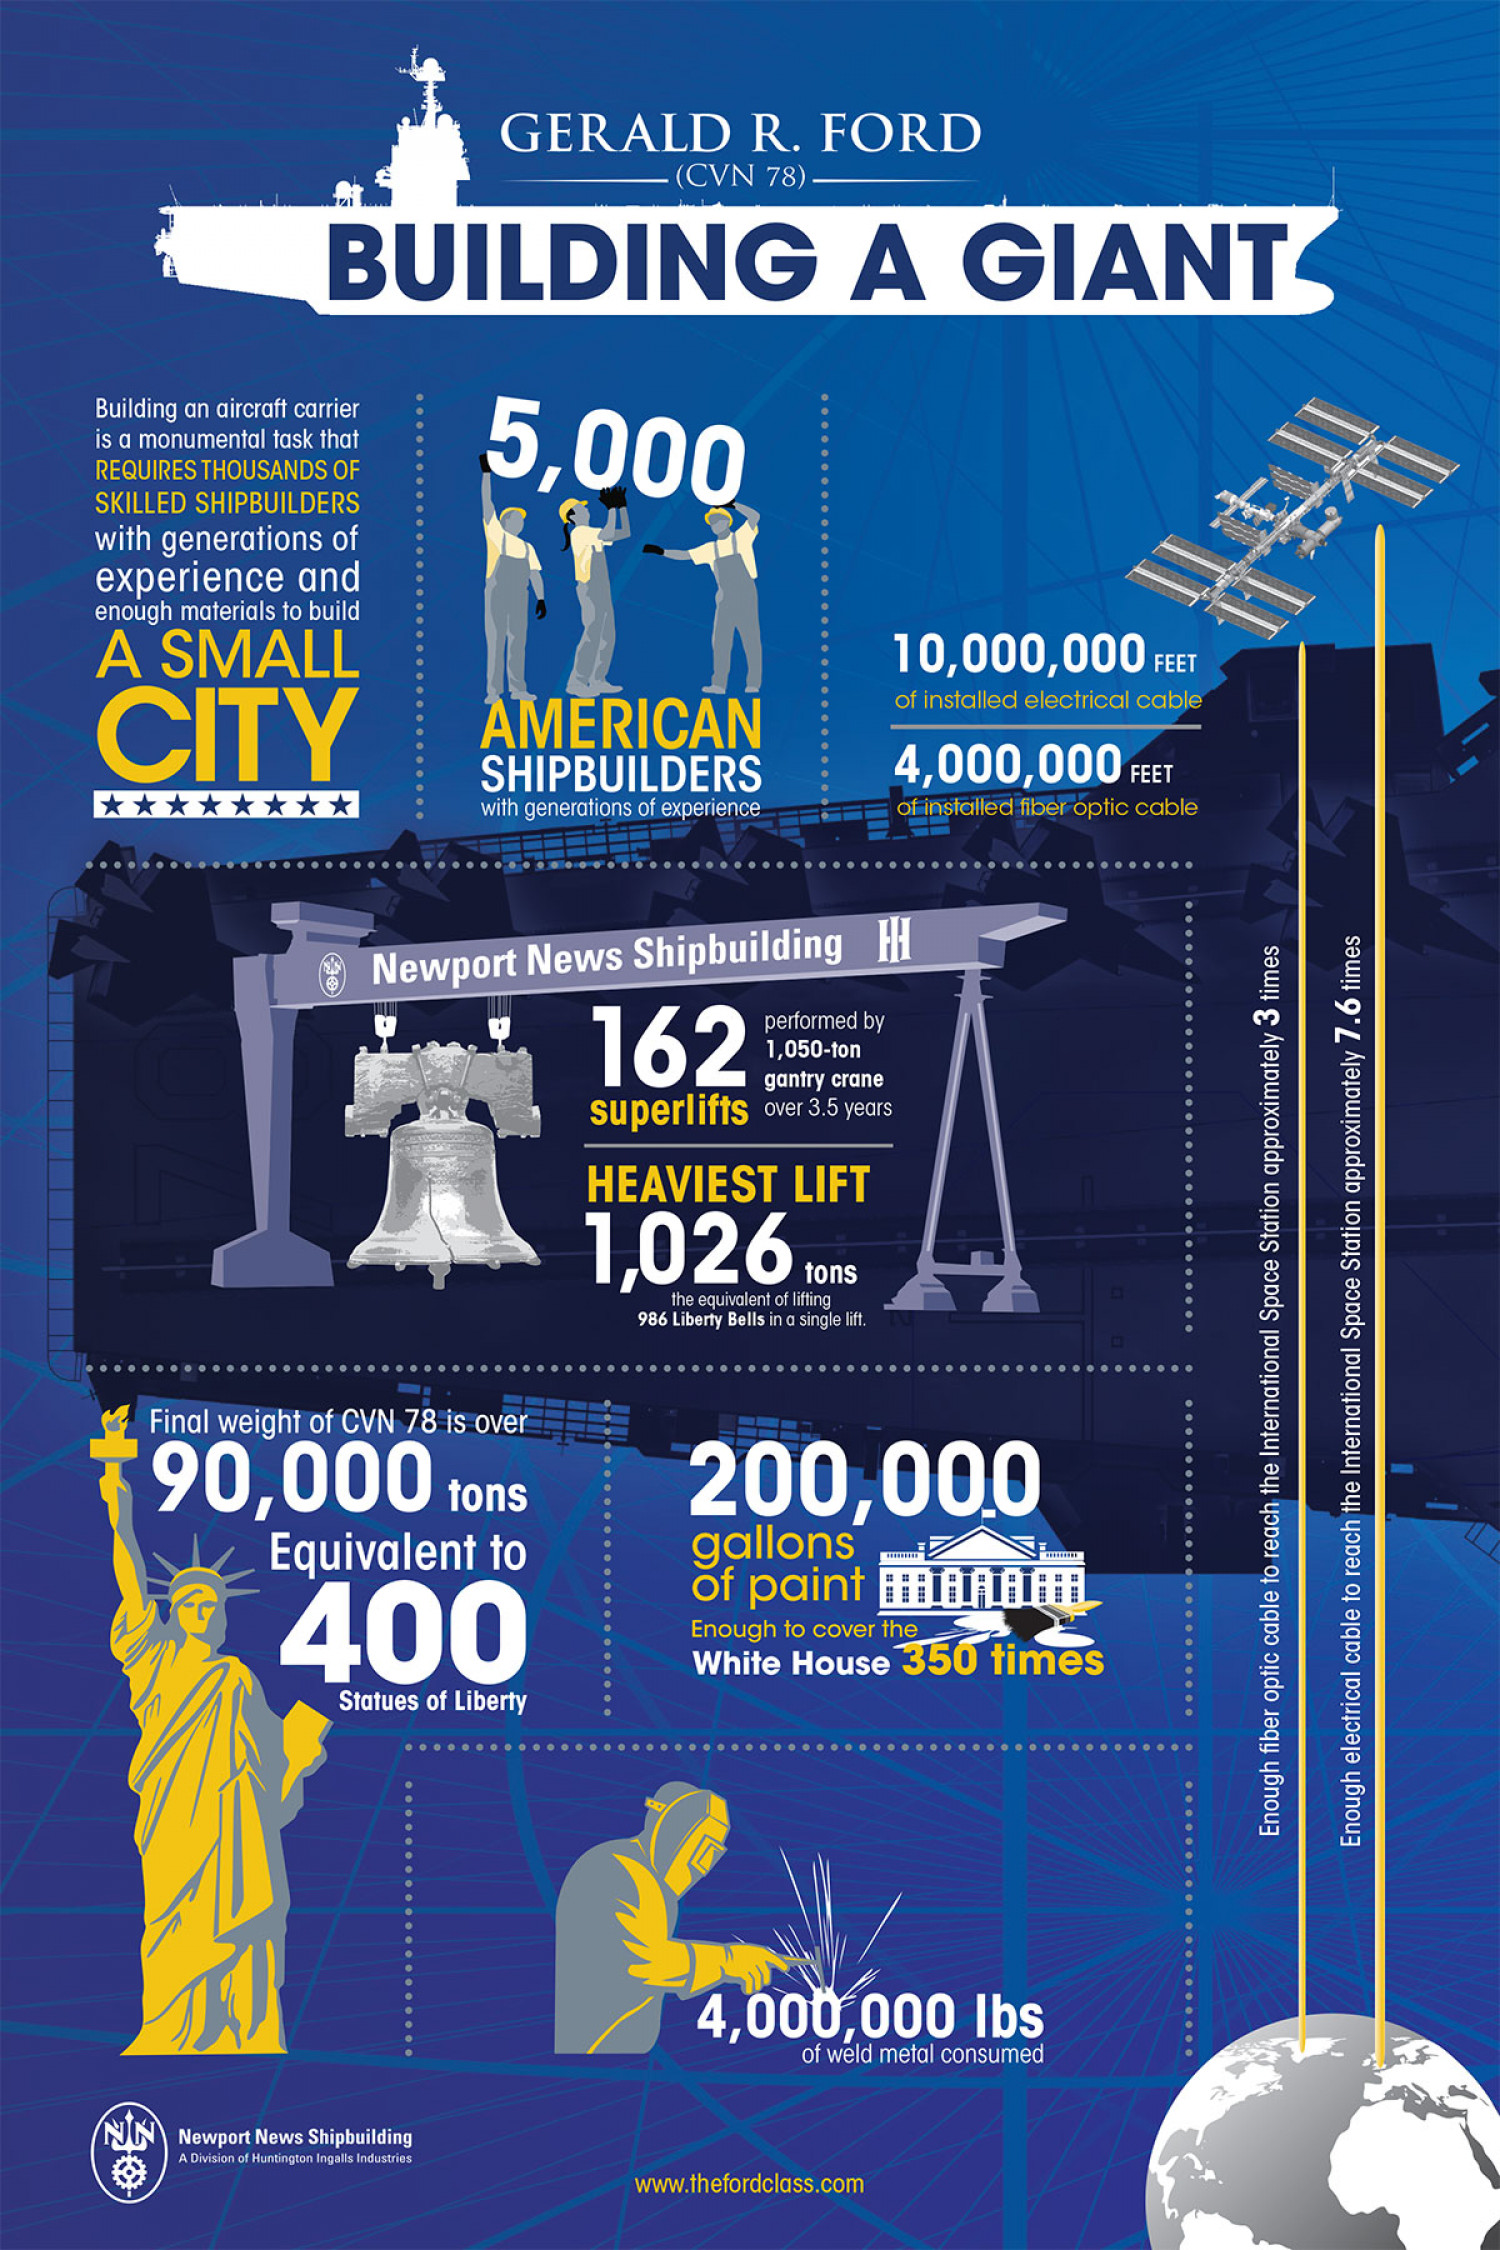 Gerald R. Ford: Building a Giant Infographic